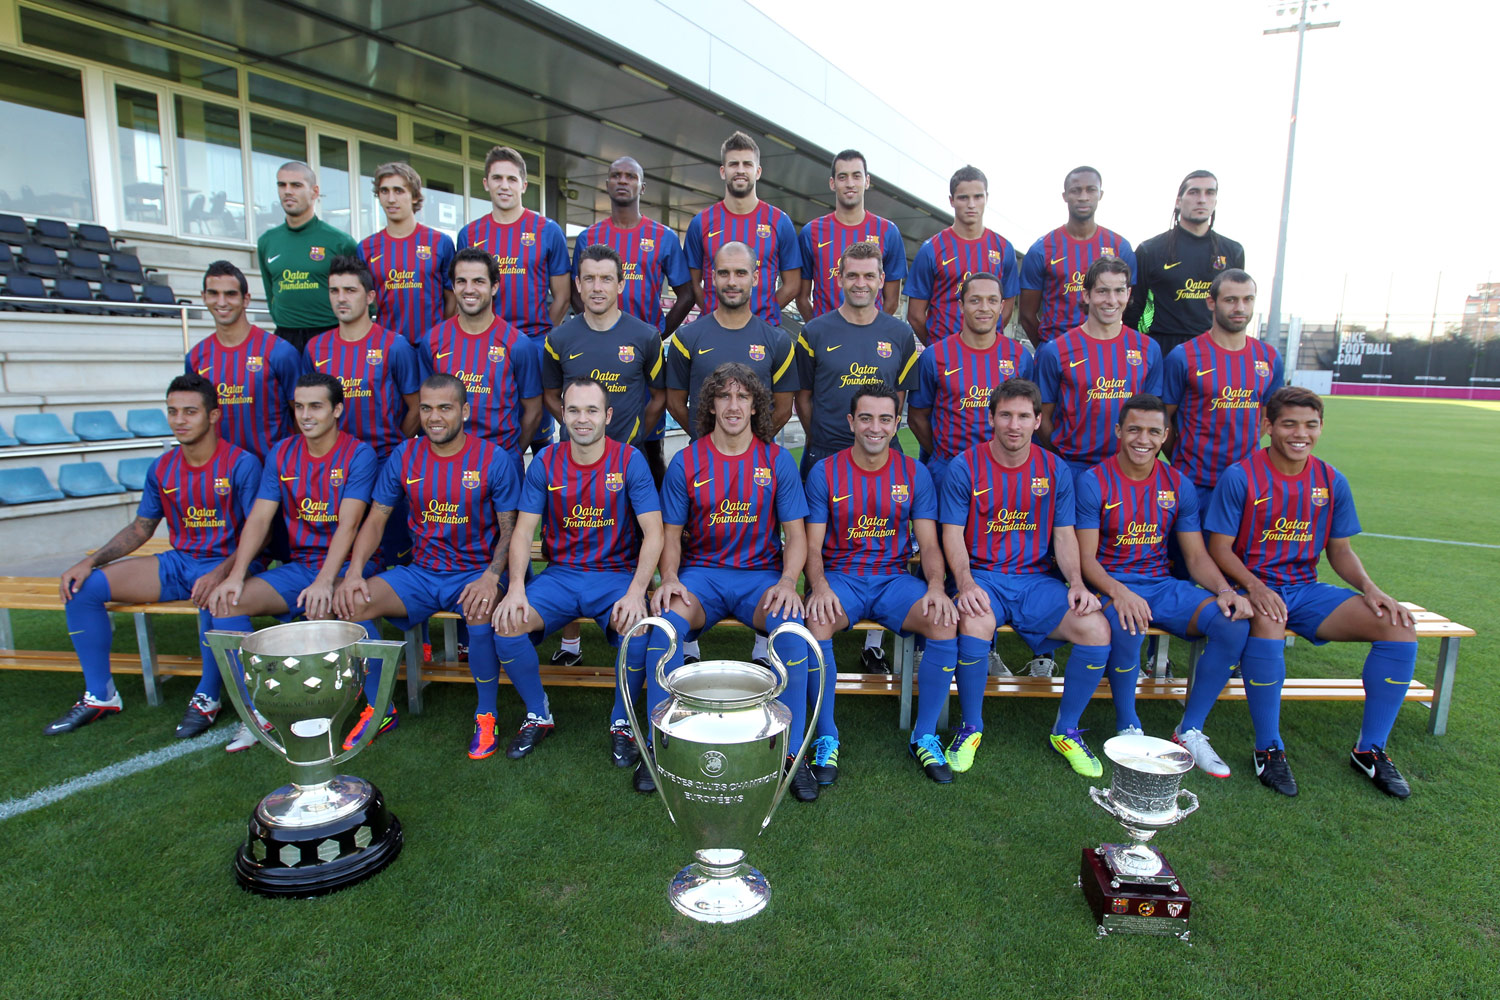 Barcelona FC 2012 Wallpapers